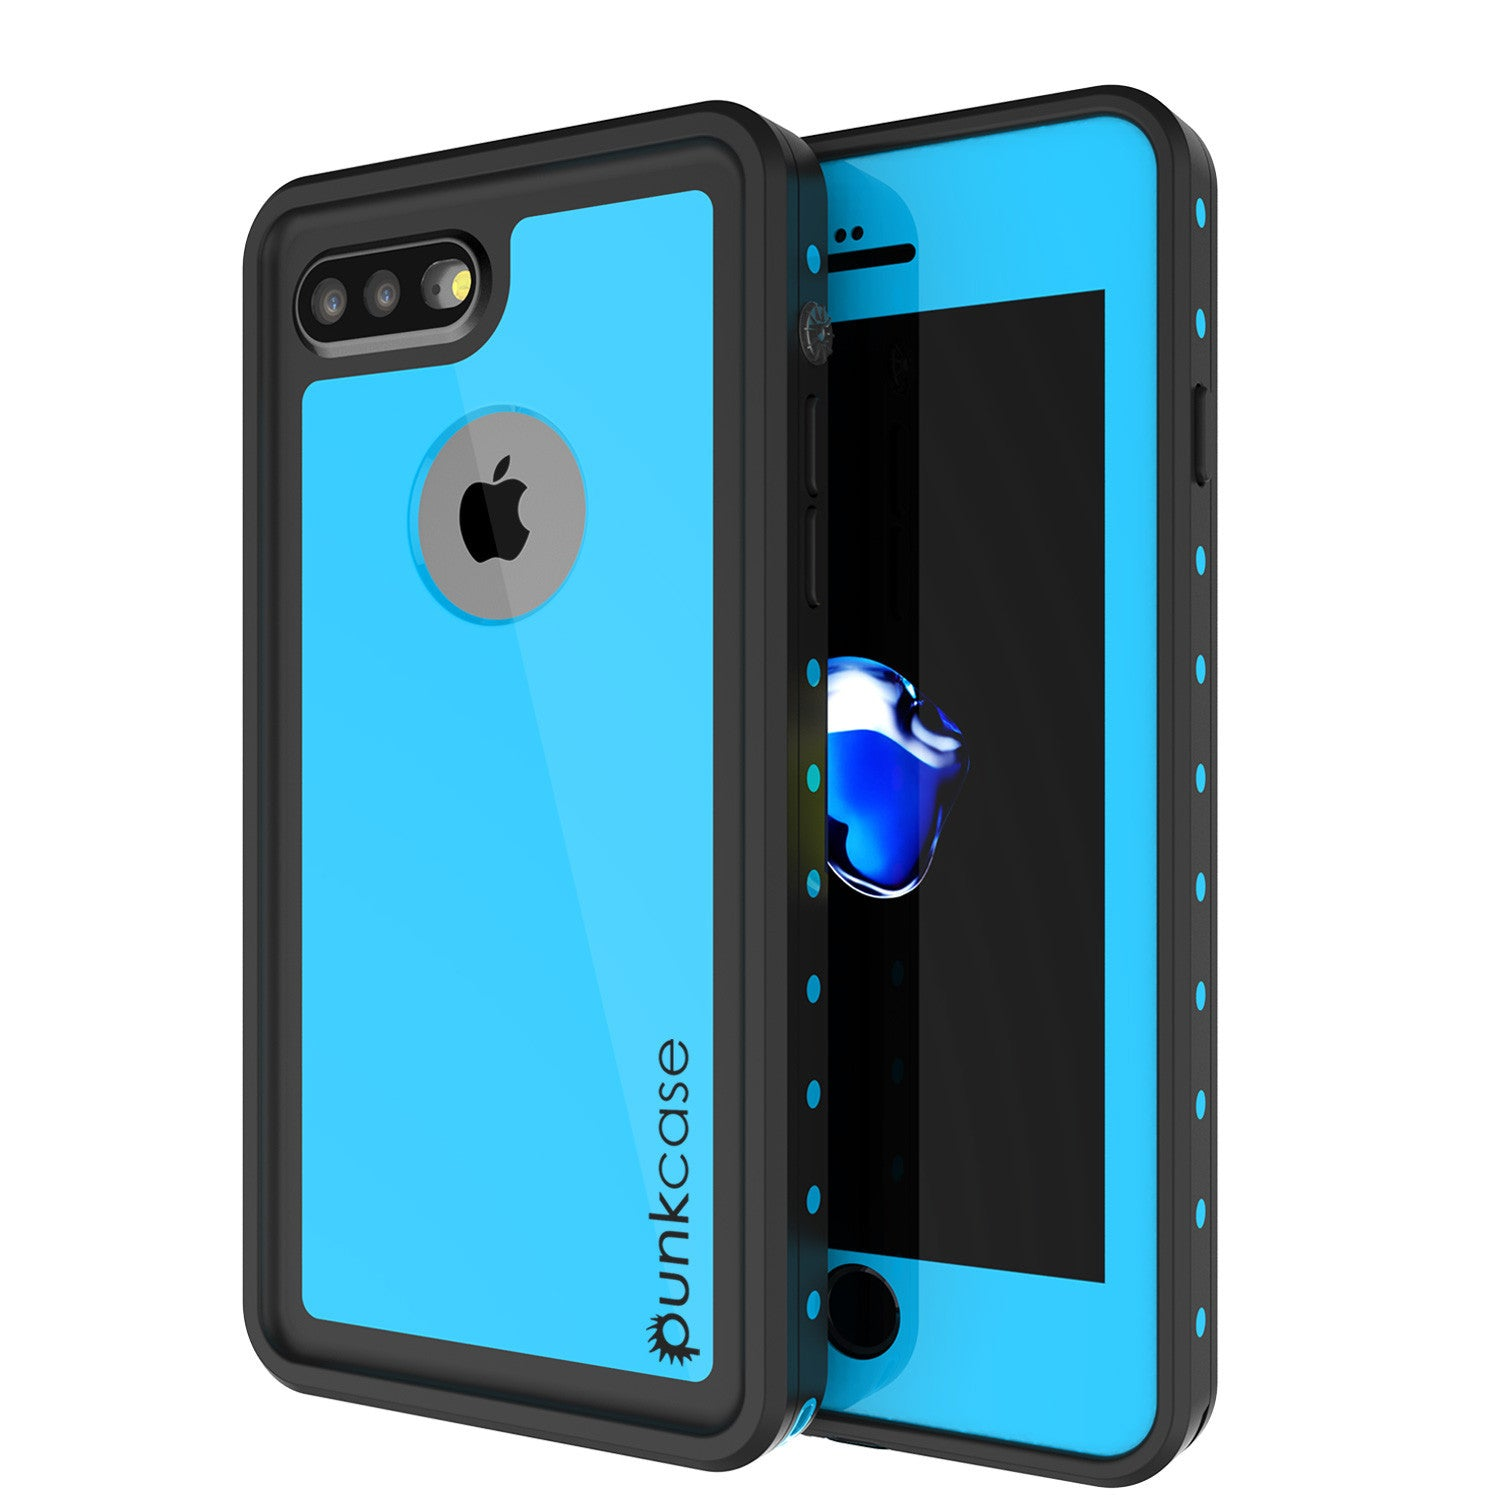 iPhone 8+ Plus Waterproof Case, Punkcase [StudStar Series] [Light Blue] [Slim Fit] [Shockproof] [Dirtproof] [Snowproof] Armor Cover